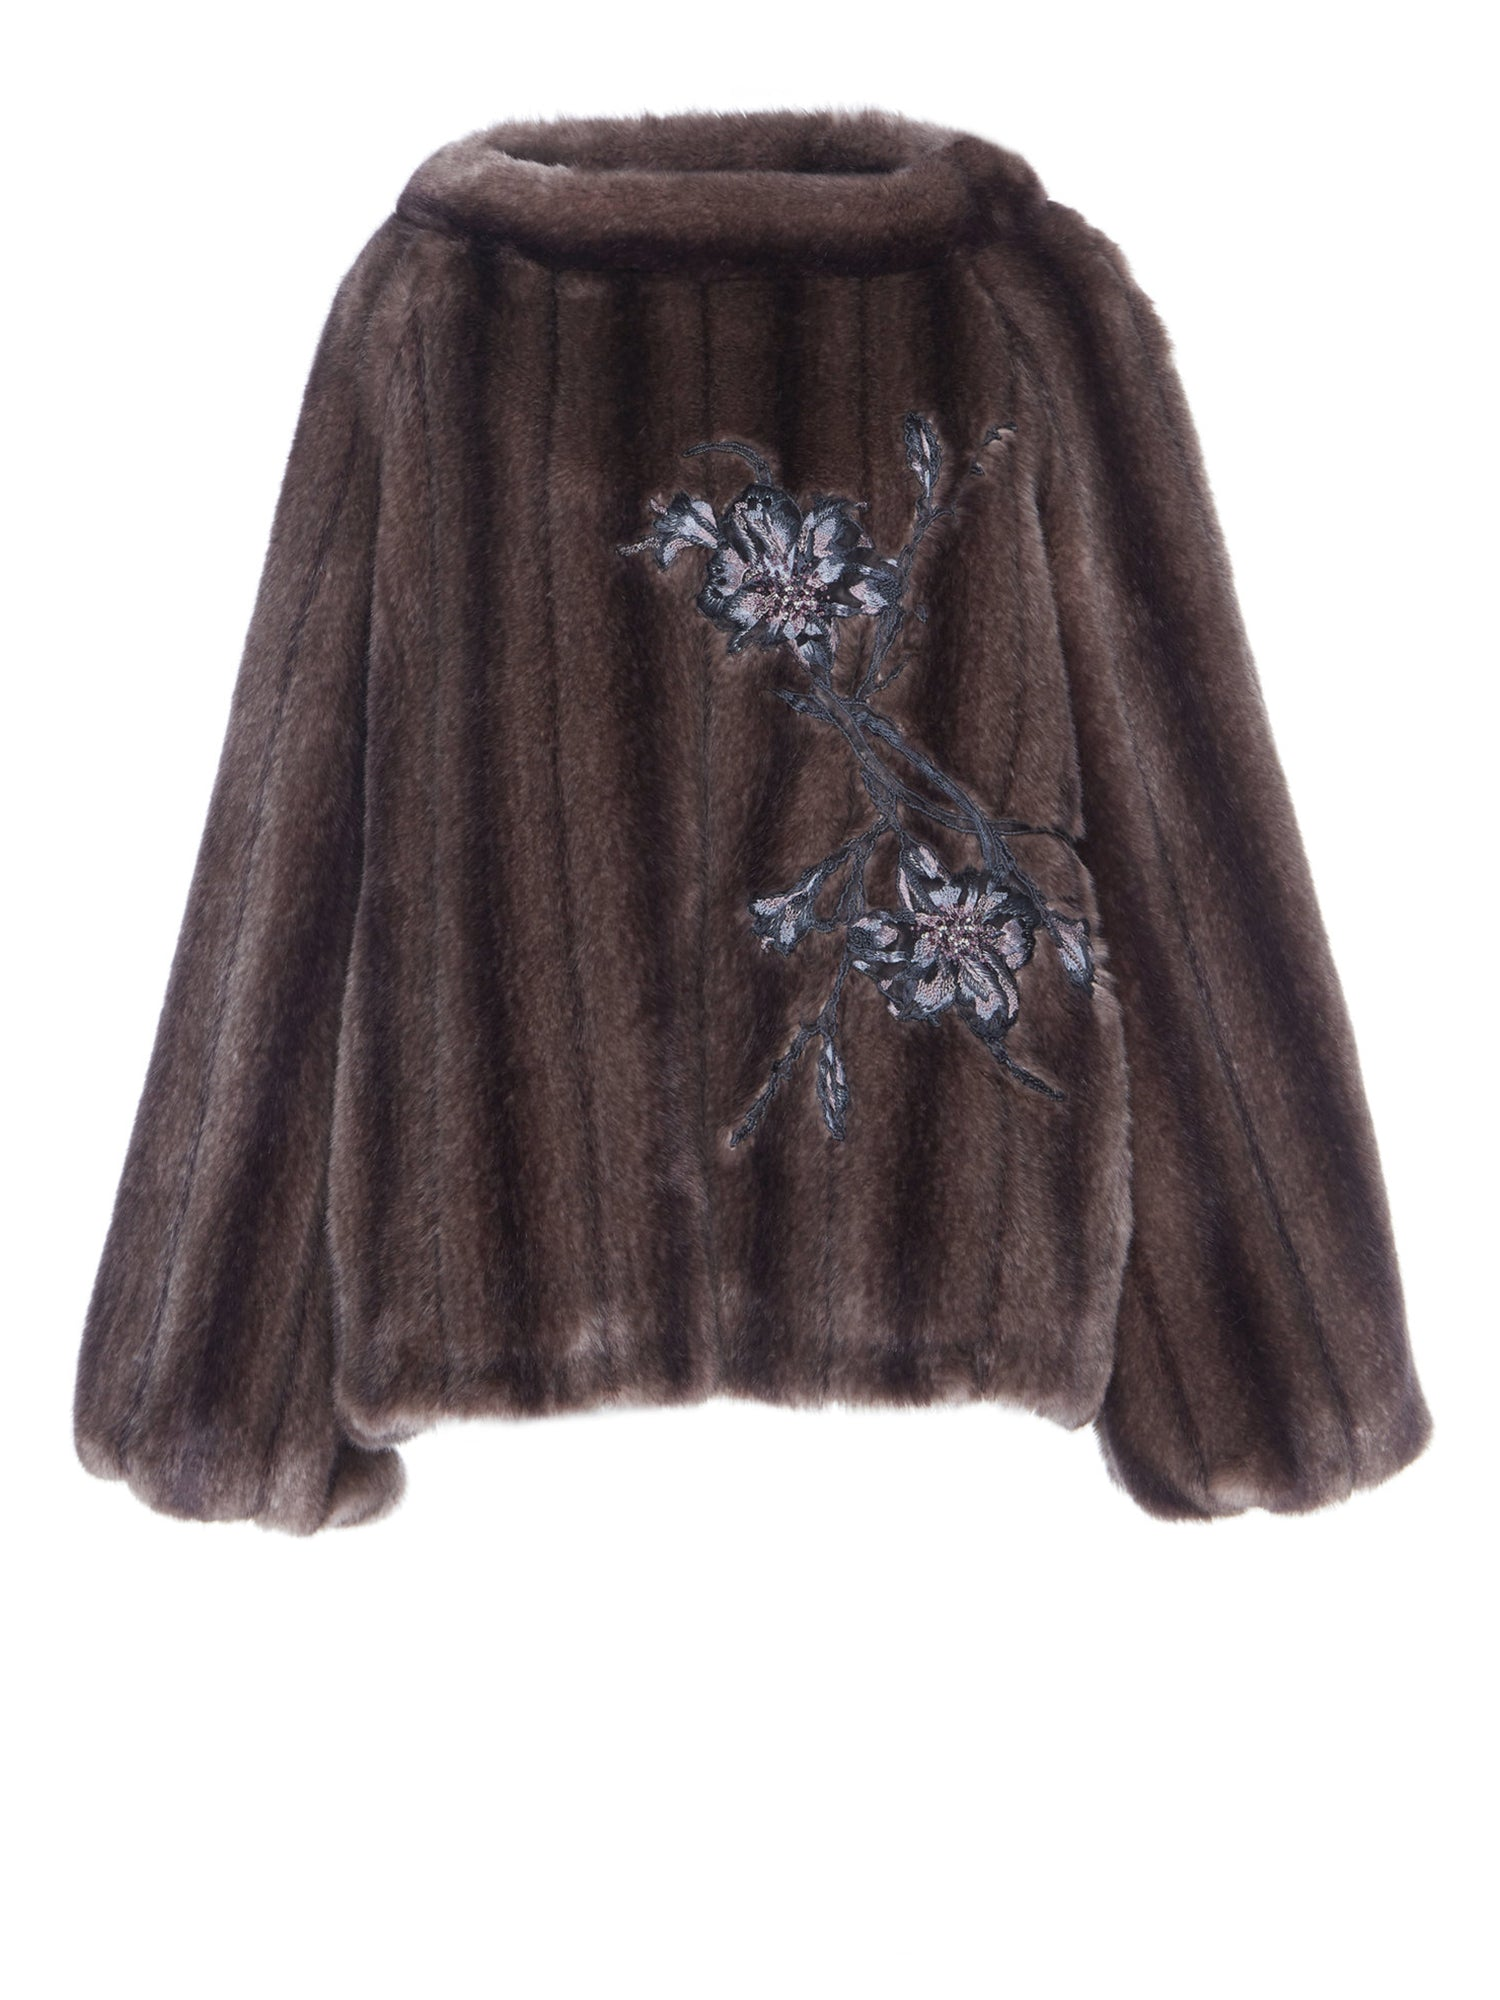 A Packshot Of Marei1998's Achillea Hand Embroidered Faux Fur Pullover In Smoked Purple Hue. Made From Soft Faux Fur, It Features Flared Sleeves And Wide Neckline.